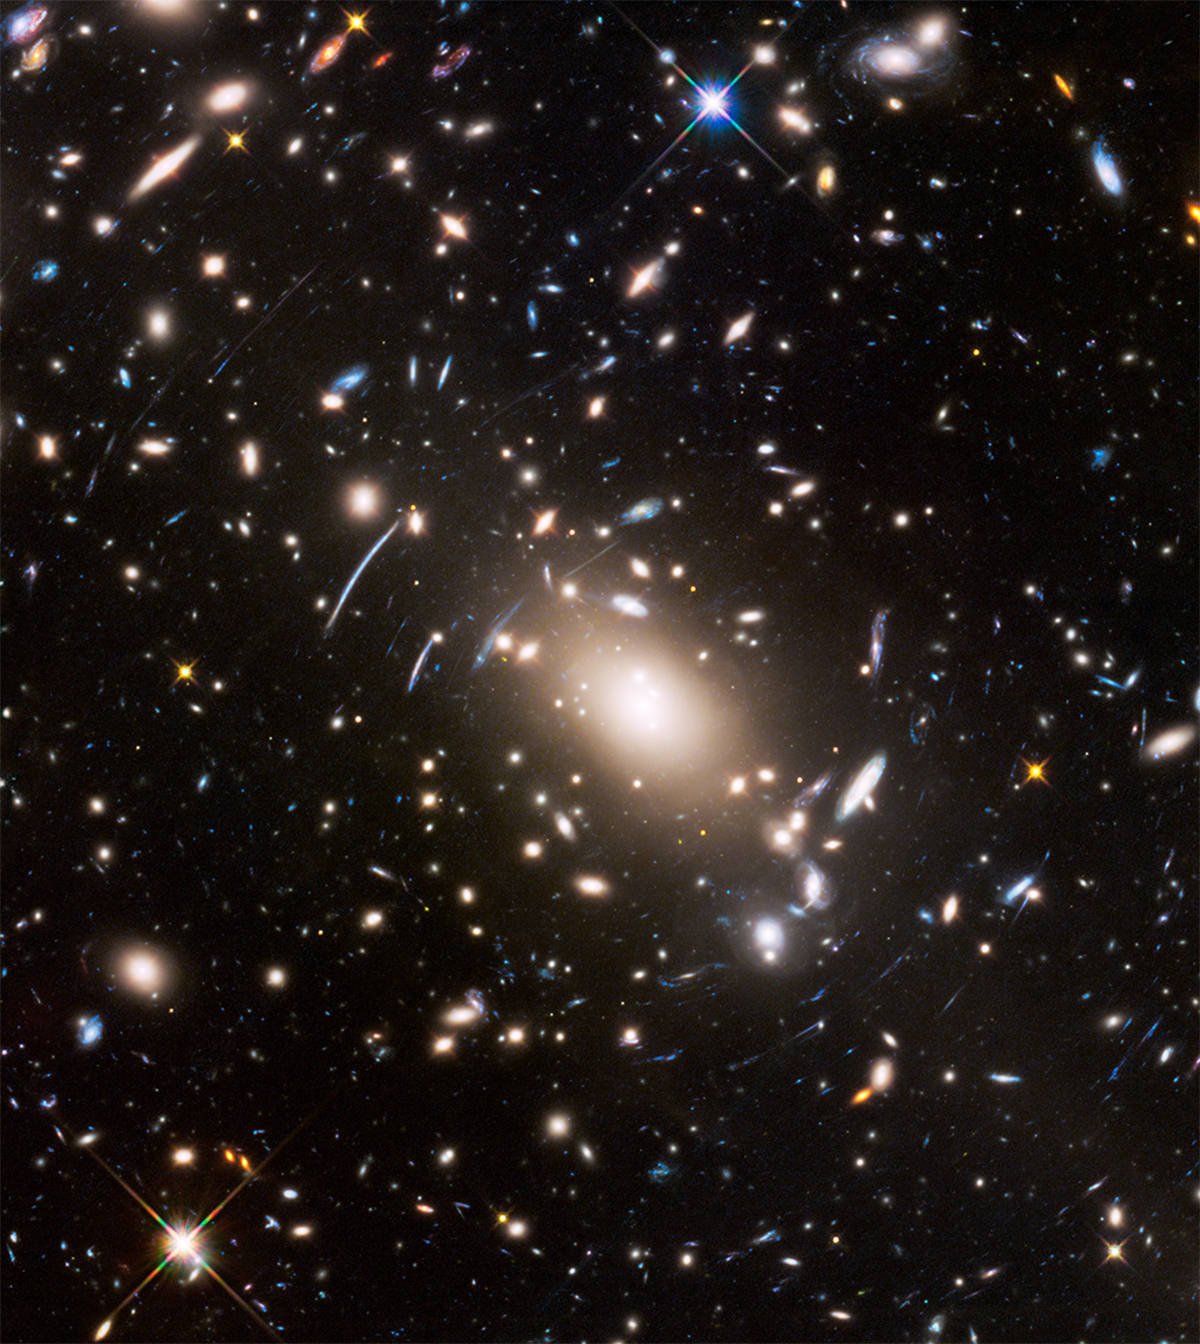 Distant galaxies imaged by Hubble